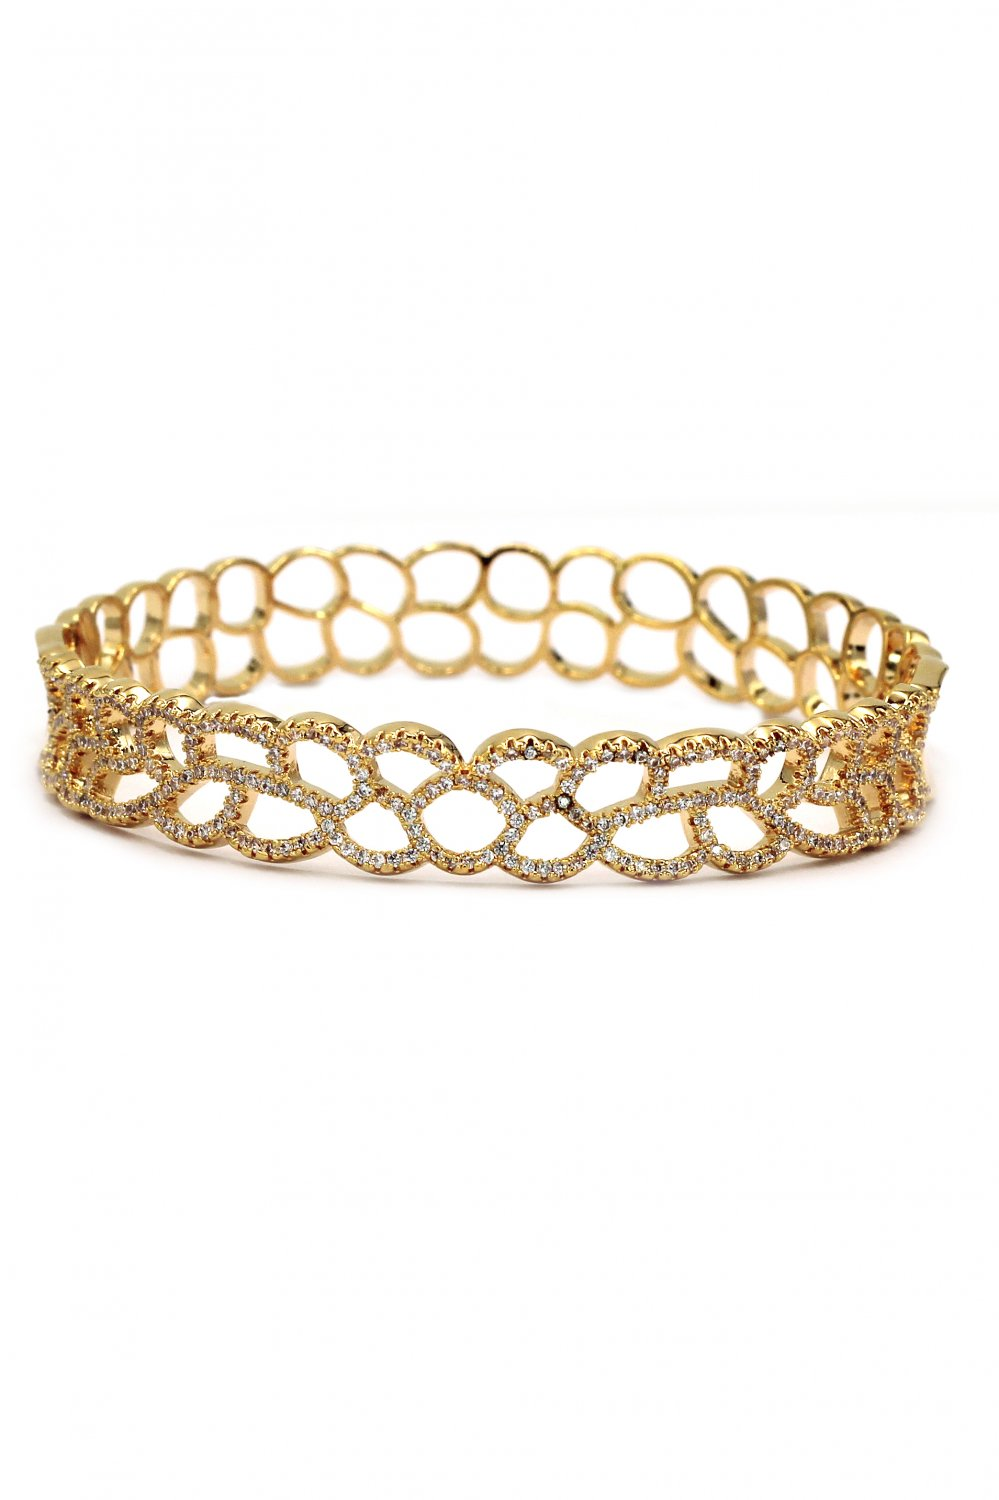 Hollow micro crystal gold bracelet